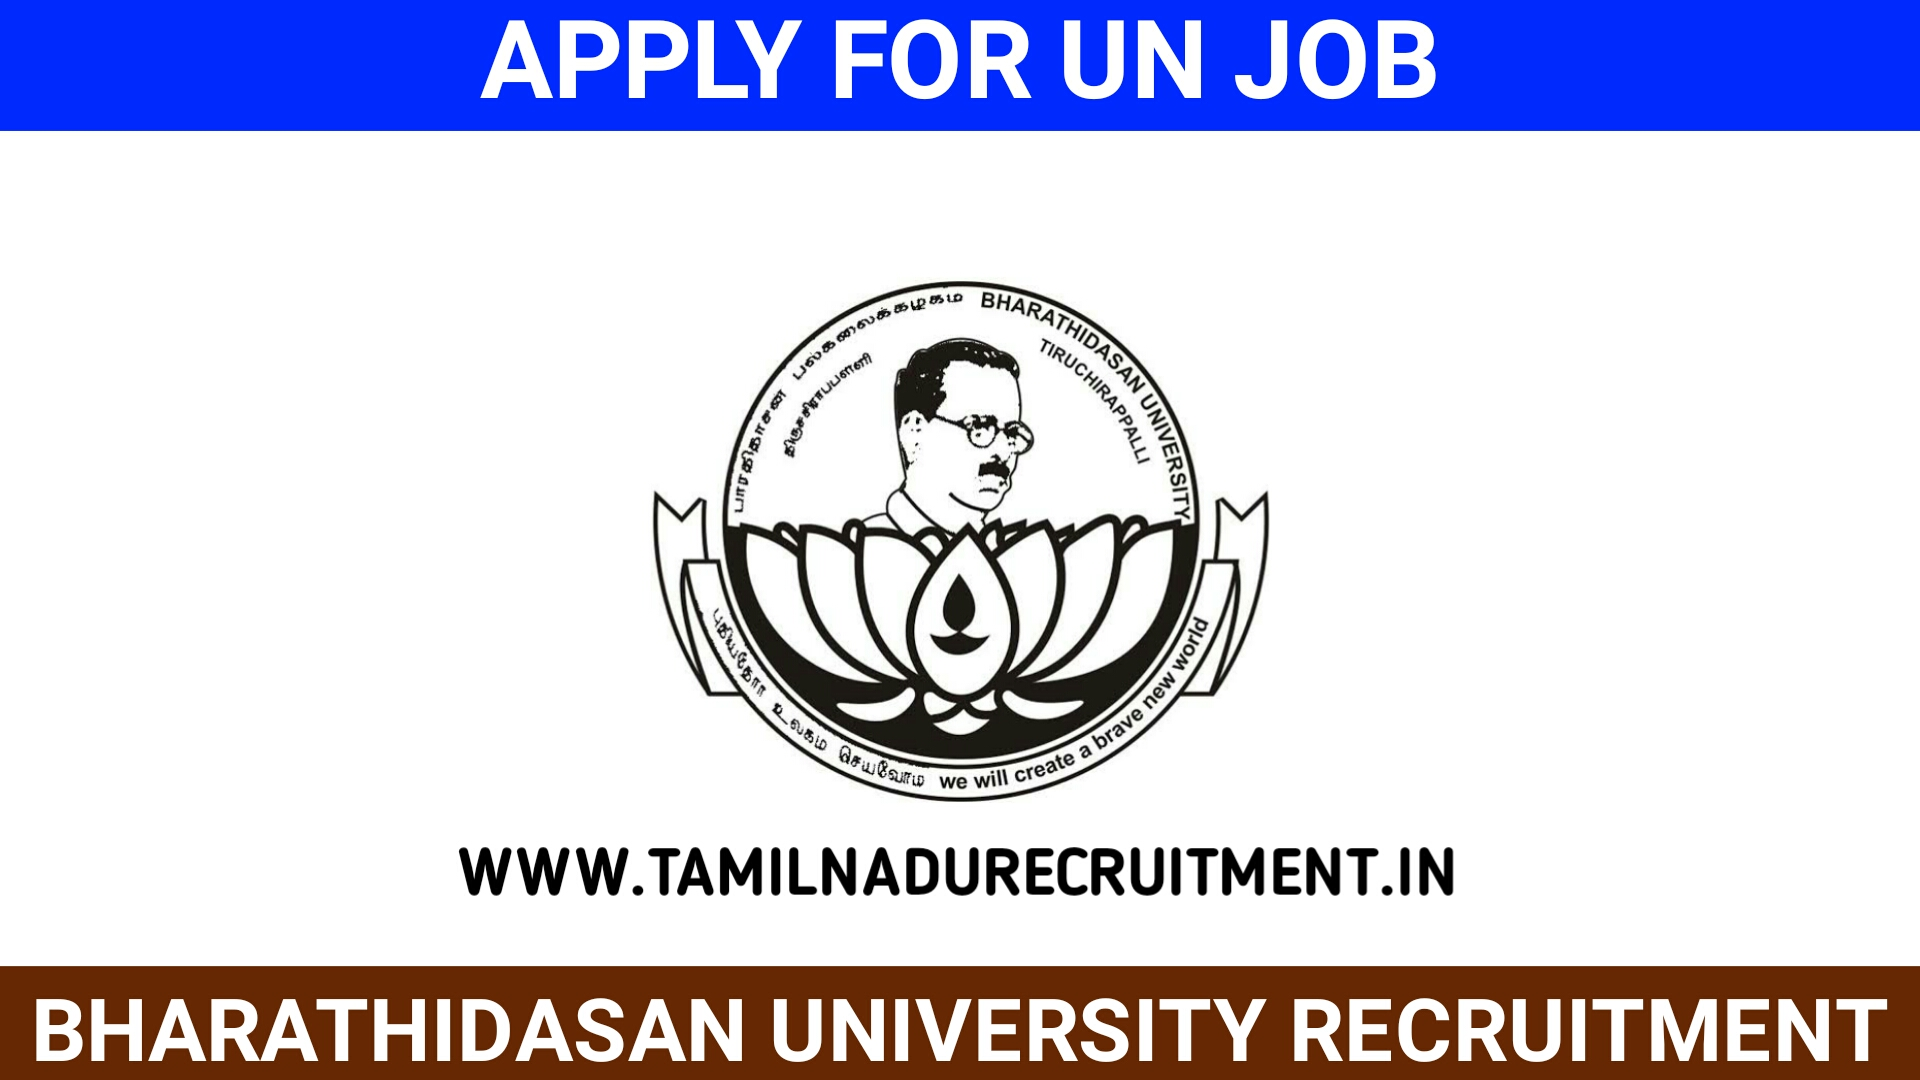 Photo of BHARATHIDASAN UNIVERSITY recruitment 2020 for 02 Research Fellow posts